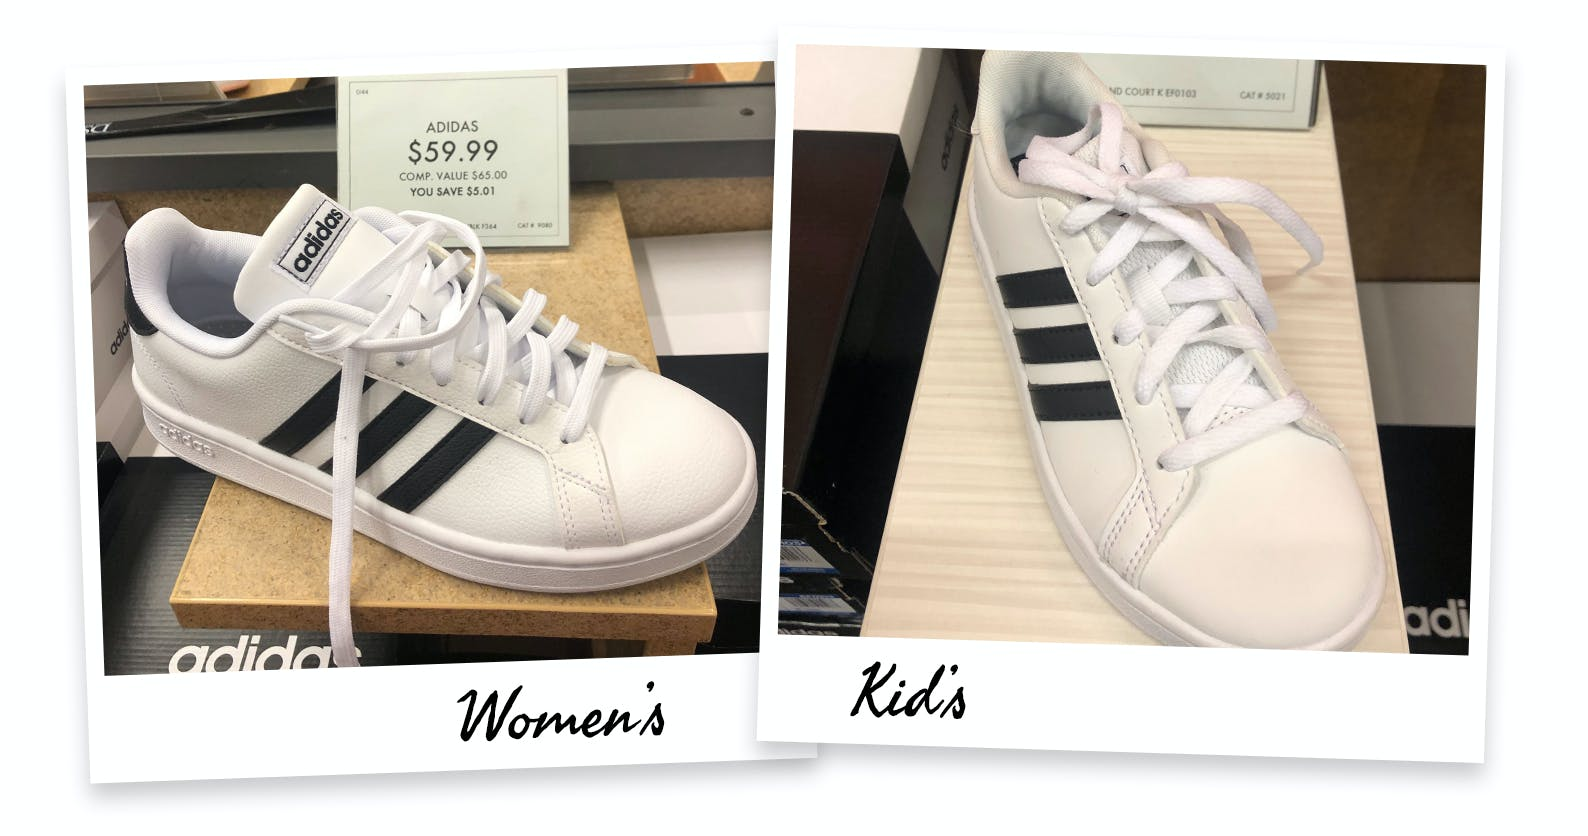 womens size 5 equal children's shoe